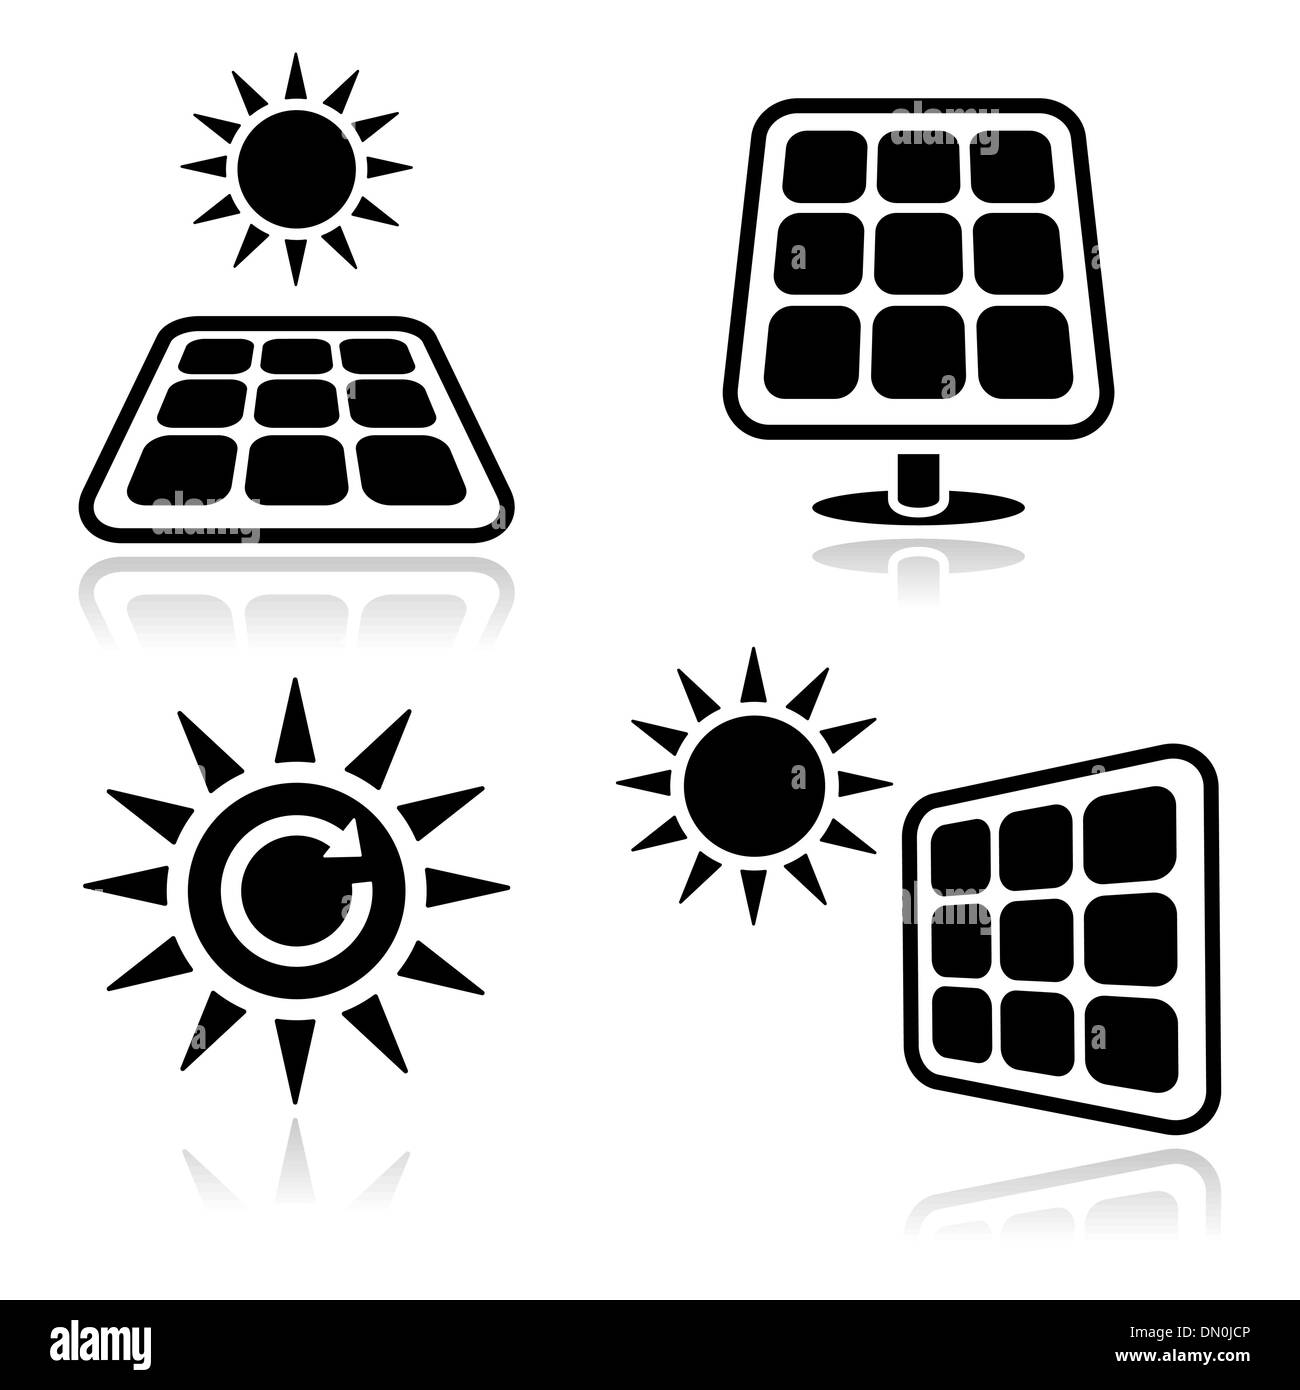 Solar panels clean black icons set - Stock Vector